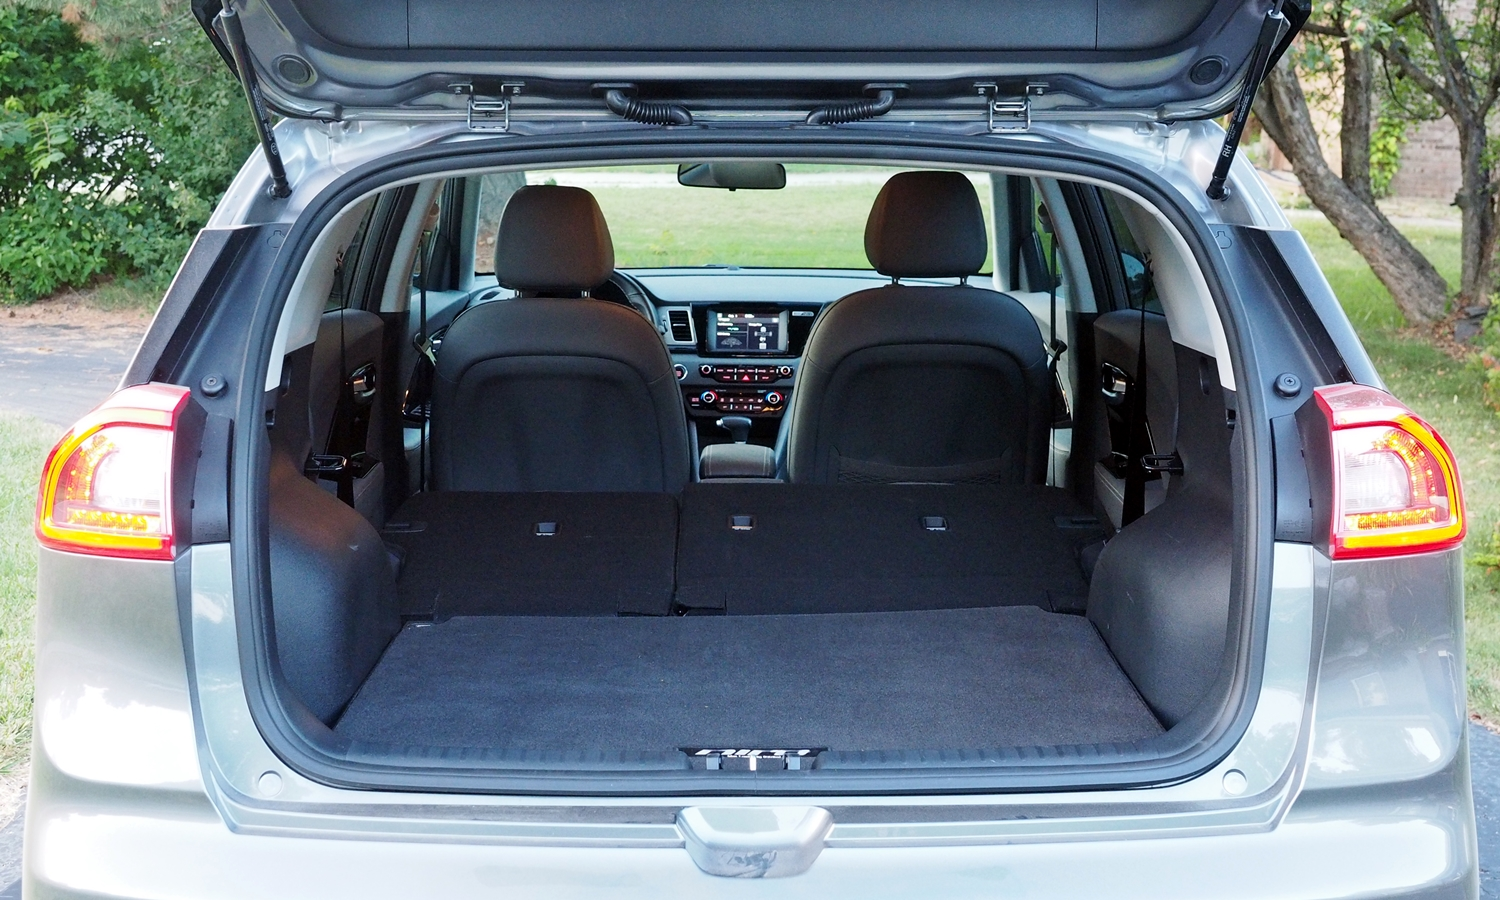 Kia Niro Photos: Kia Niro cargo area seat folded